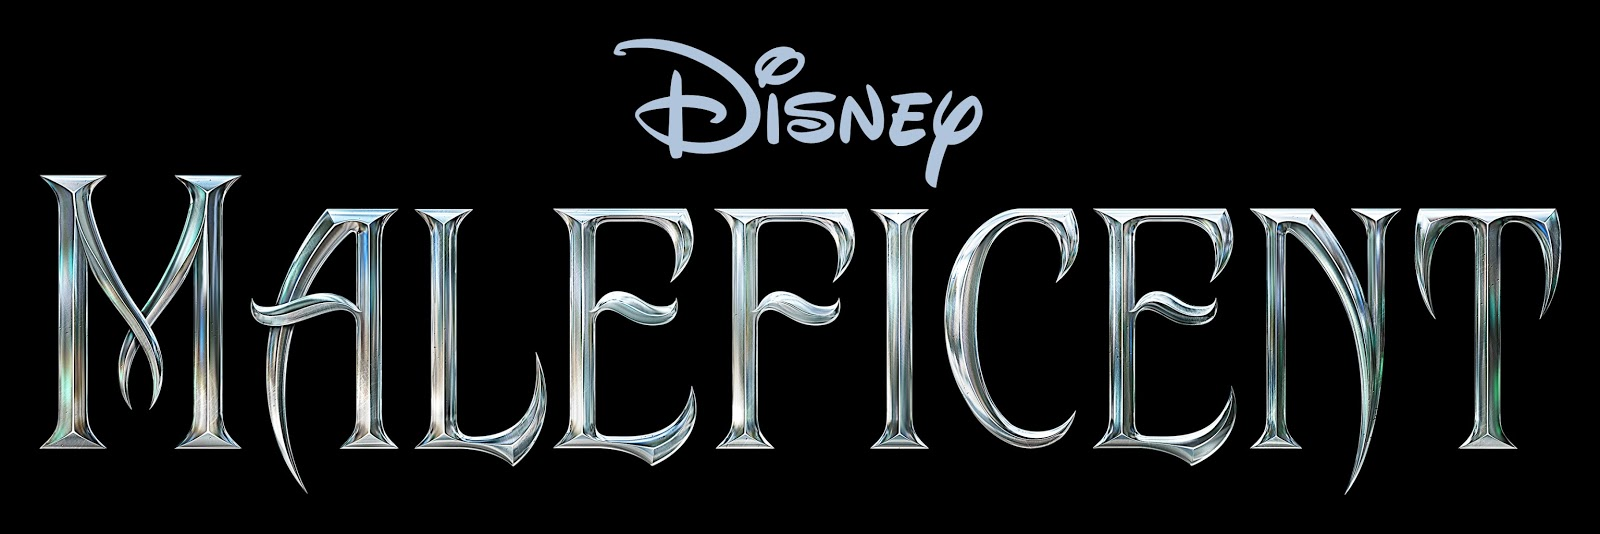 Maleficent Movie Logo And Plot Synopsis Teaser Trailer